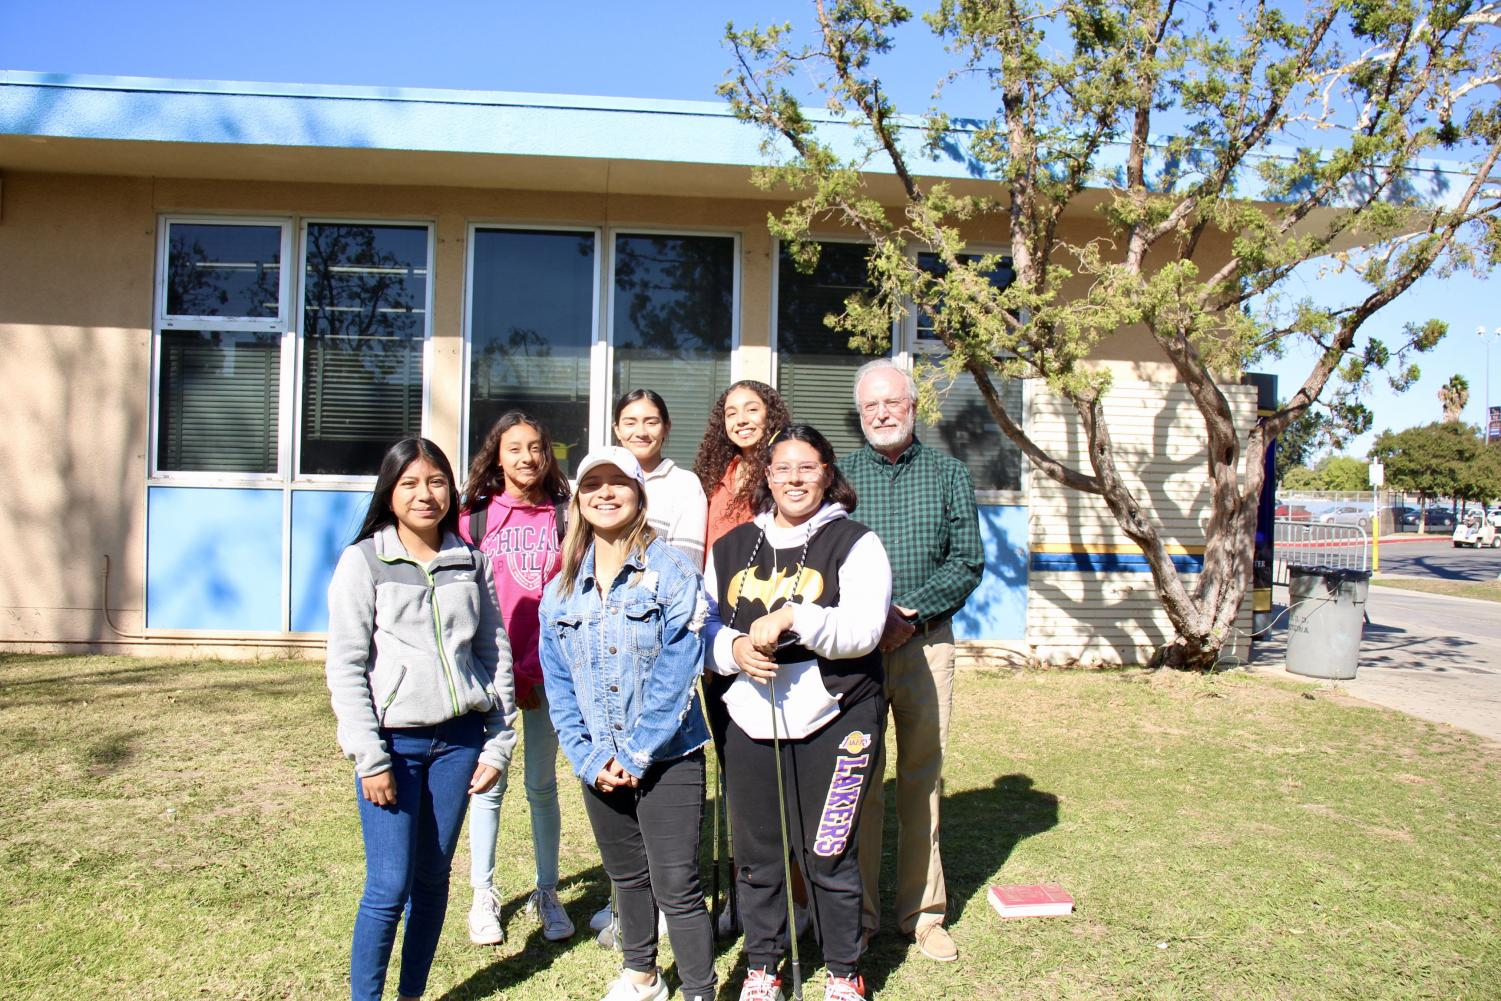 2019-2020 BCCHS Girl's Golf Team: (left to right bottom row) Evelin Lopez (11), Angelica Platas (12), Leah Chavarria (11). (left to right top row) Sarah Amaya (9), Miroslava Haro (11), Sarah Medina (12), Coach Kevin Kelly.  Not pictured is Kimberly Platas (10).